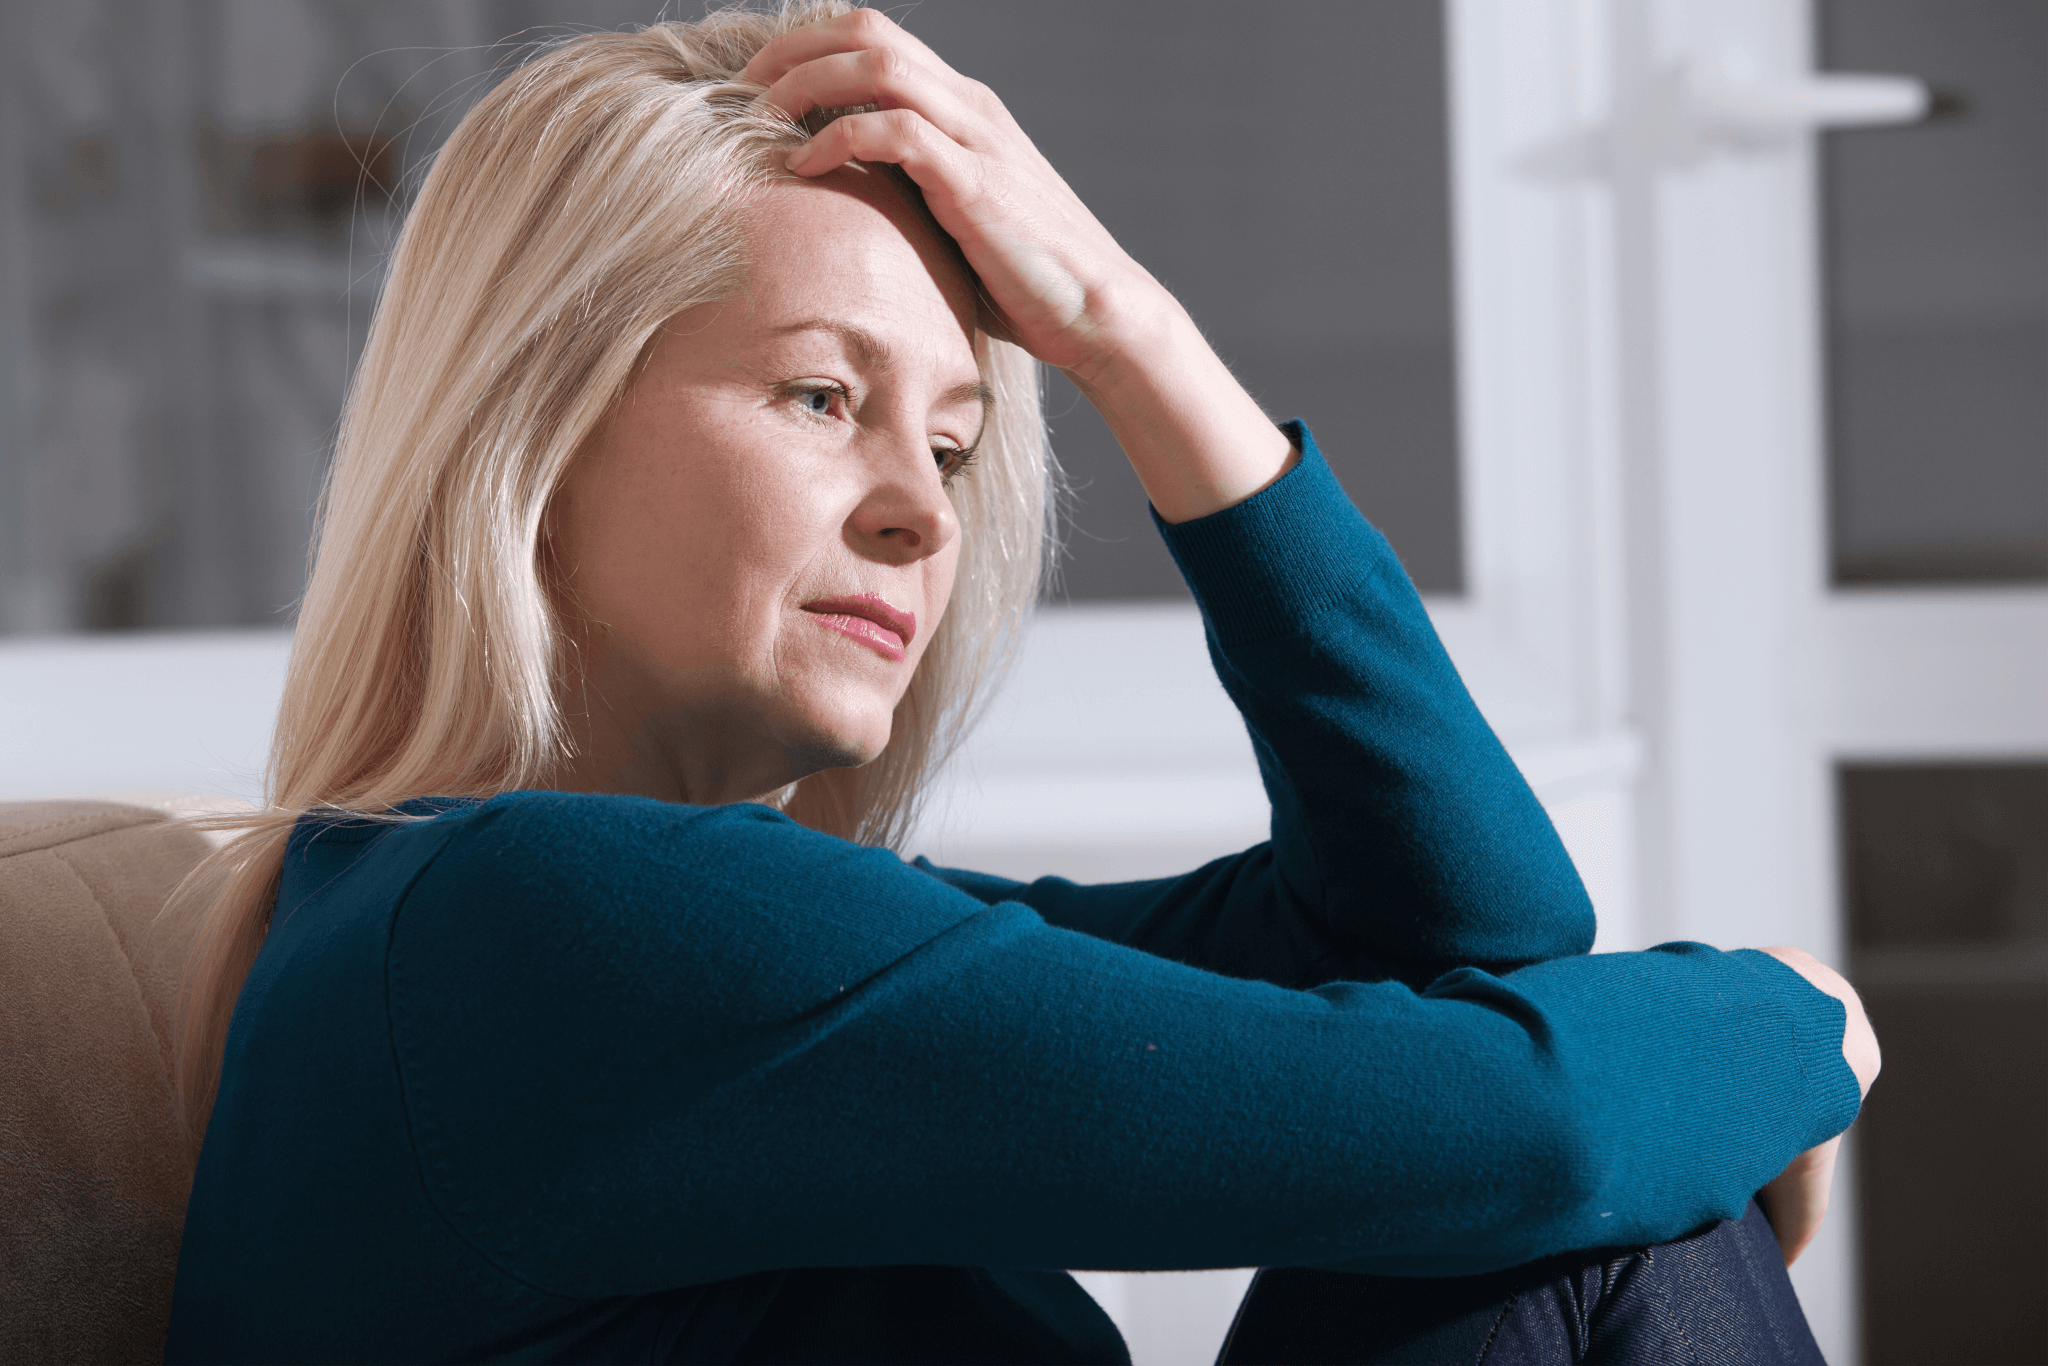 A blond, mature, white woman in a blue pullover sitting with her left hand on her forehead looking depressed.